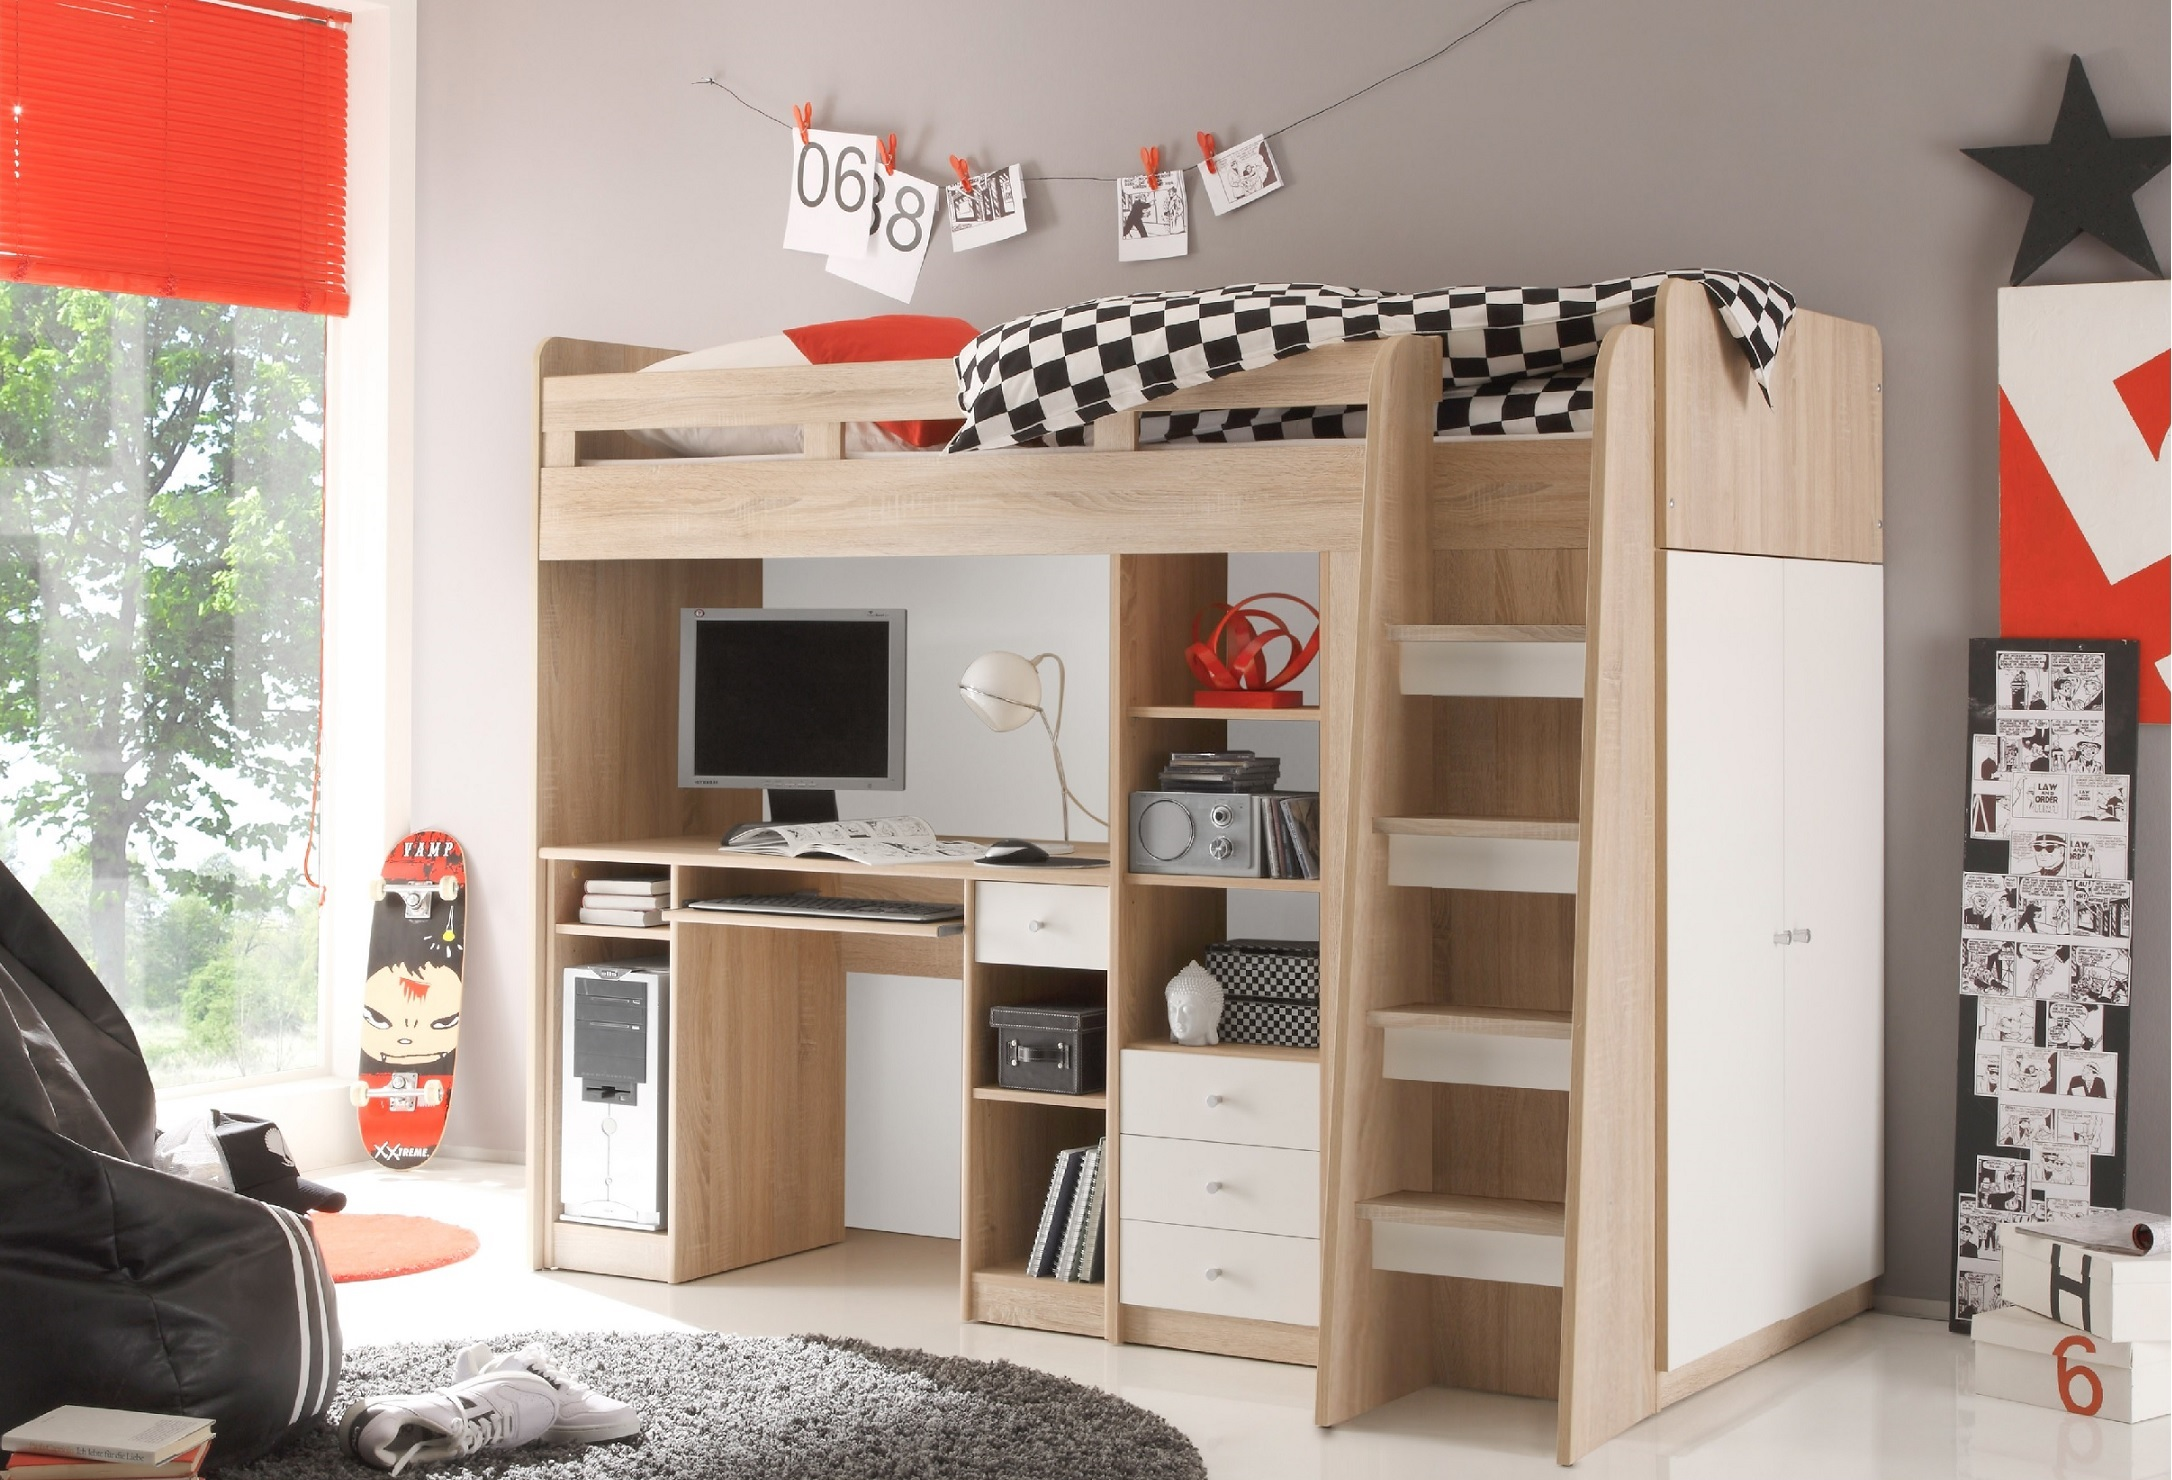 hochbett unit jugendbett kinderbett etagenbett stockbett schreibtisch eiche wei ebay. Black Bedroom Furniture Sets. Home Design Ideas